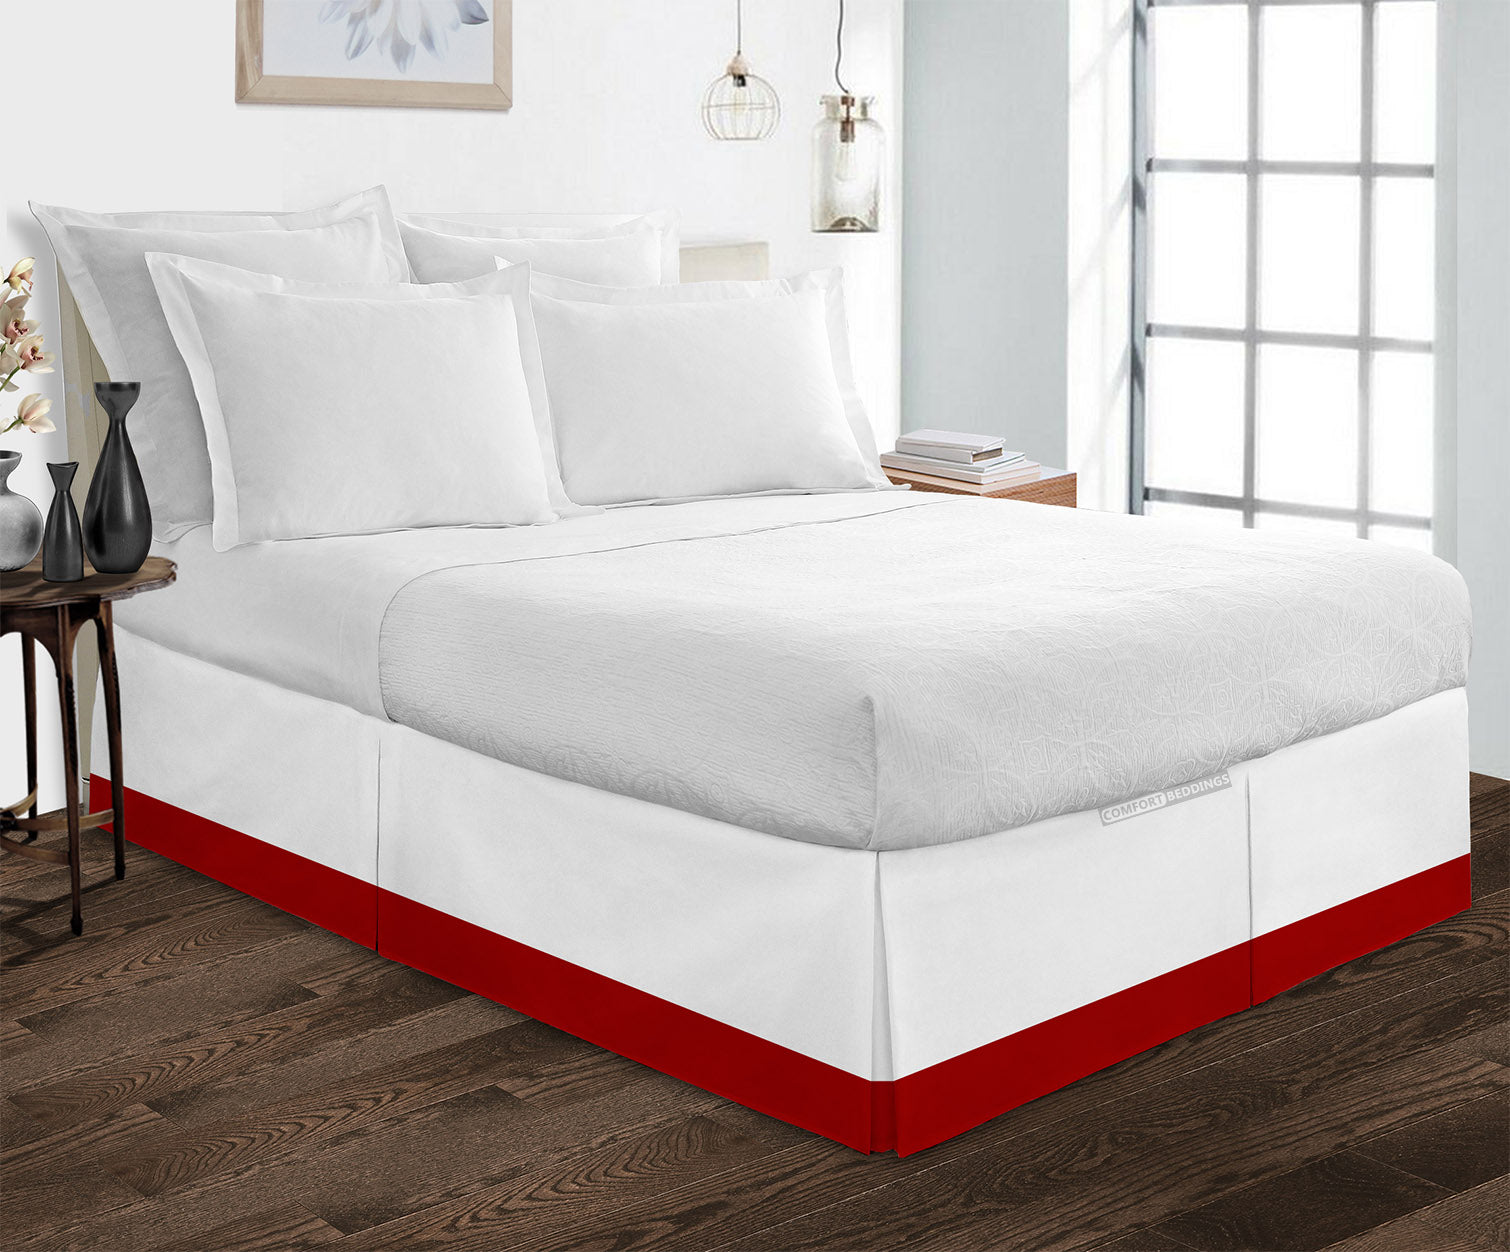 100% cotton Blood Red two tone bed skirt